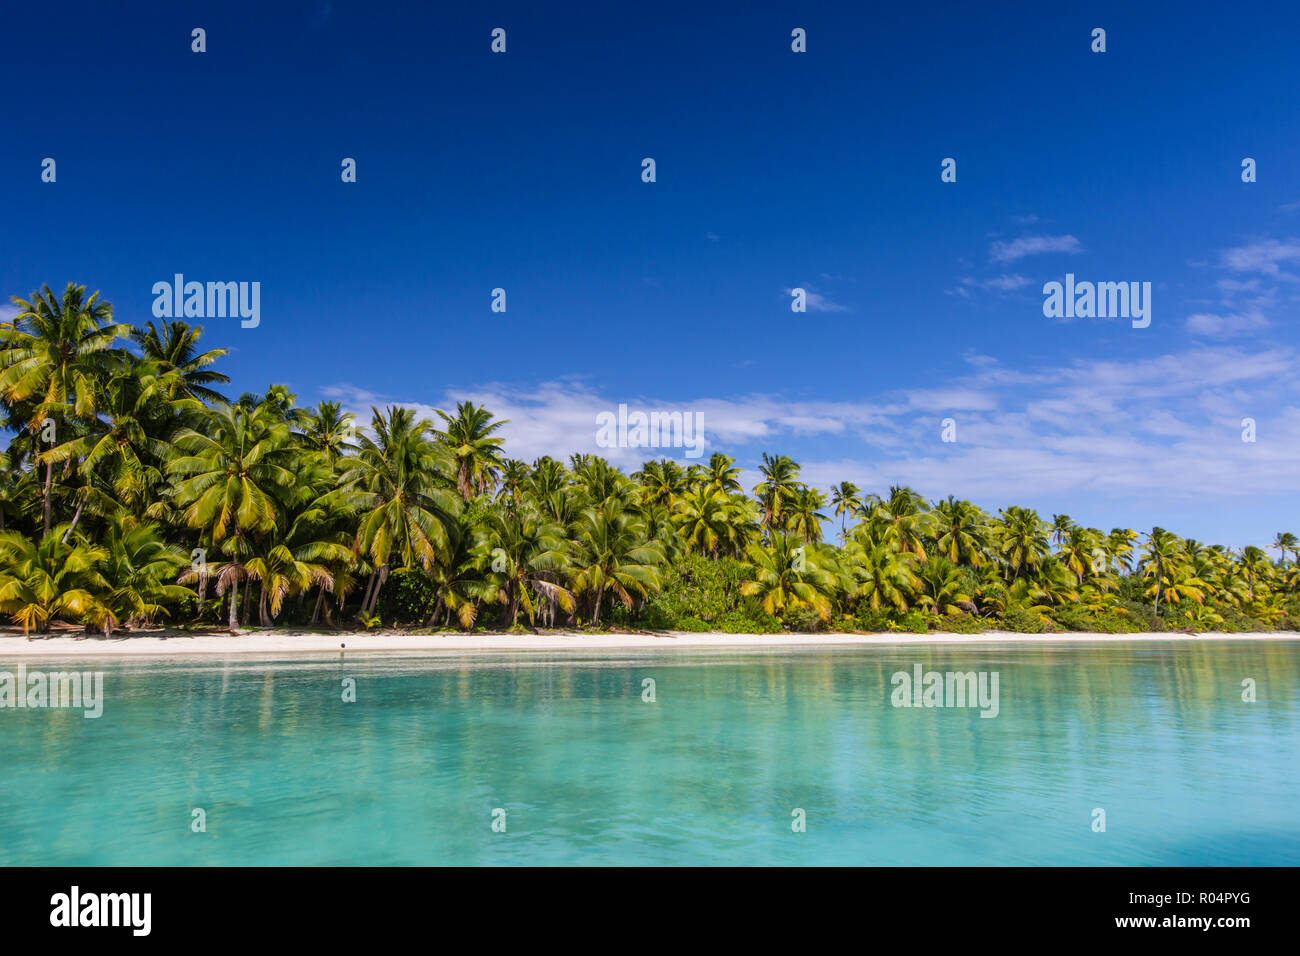 Coconut palm trees line the beach on One Foot Island, Aitutaki, Cook Islands, South Pacific Islands, Pacific - Stock Image